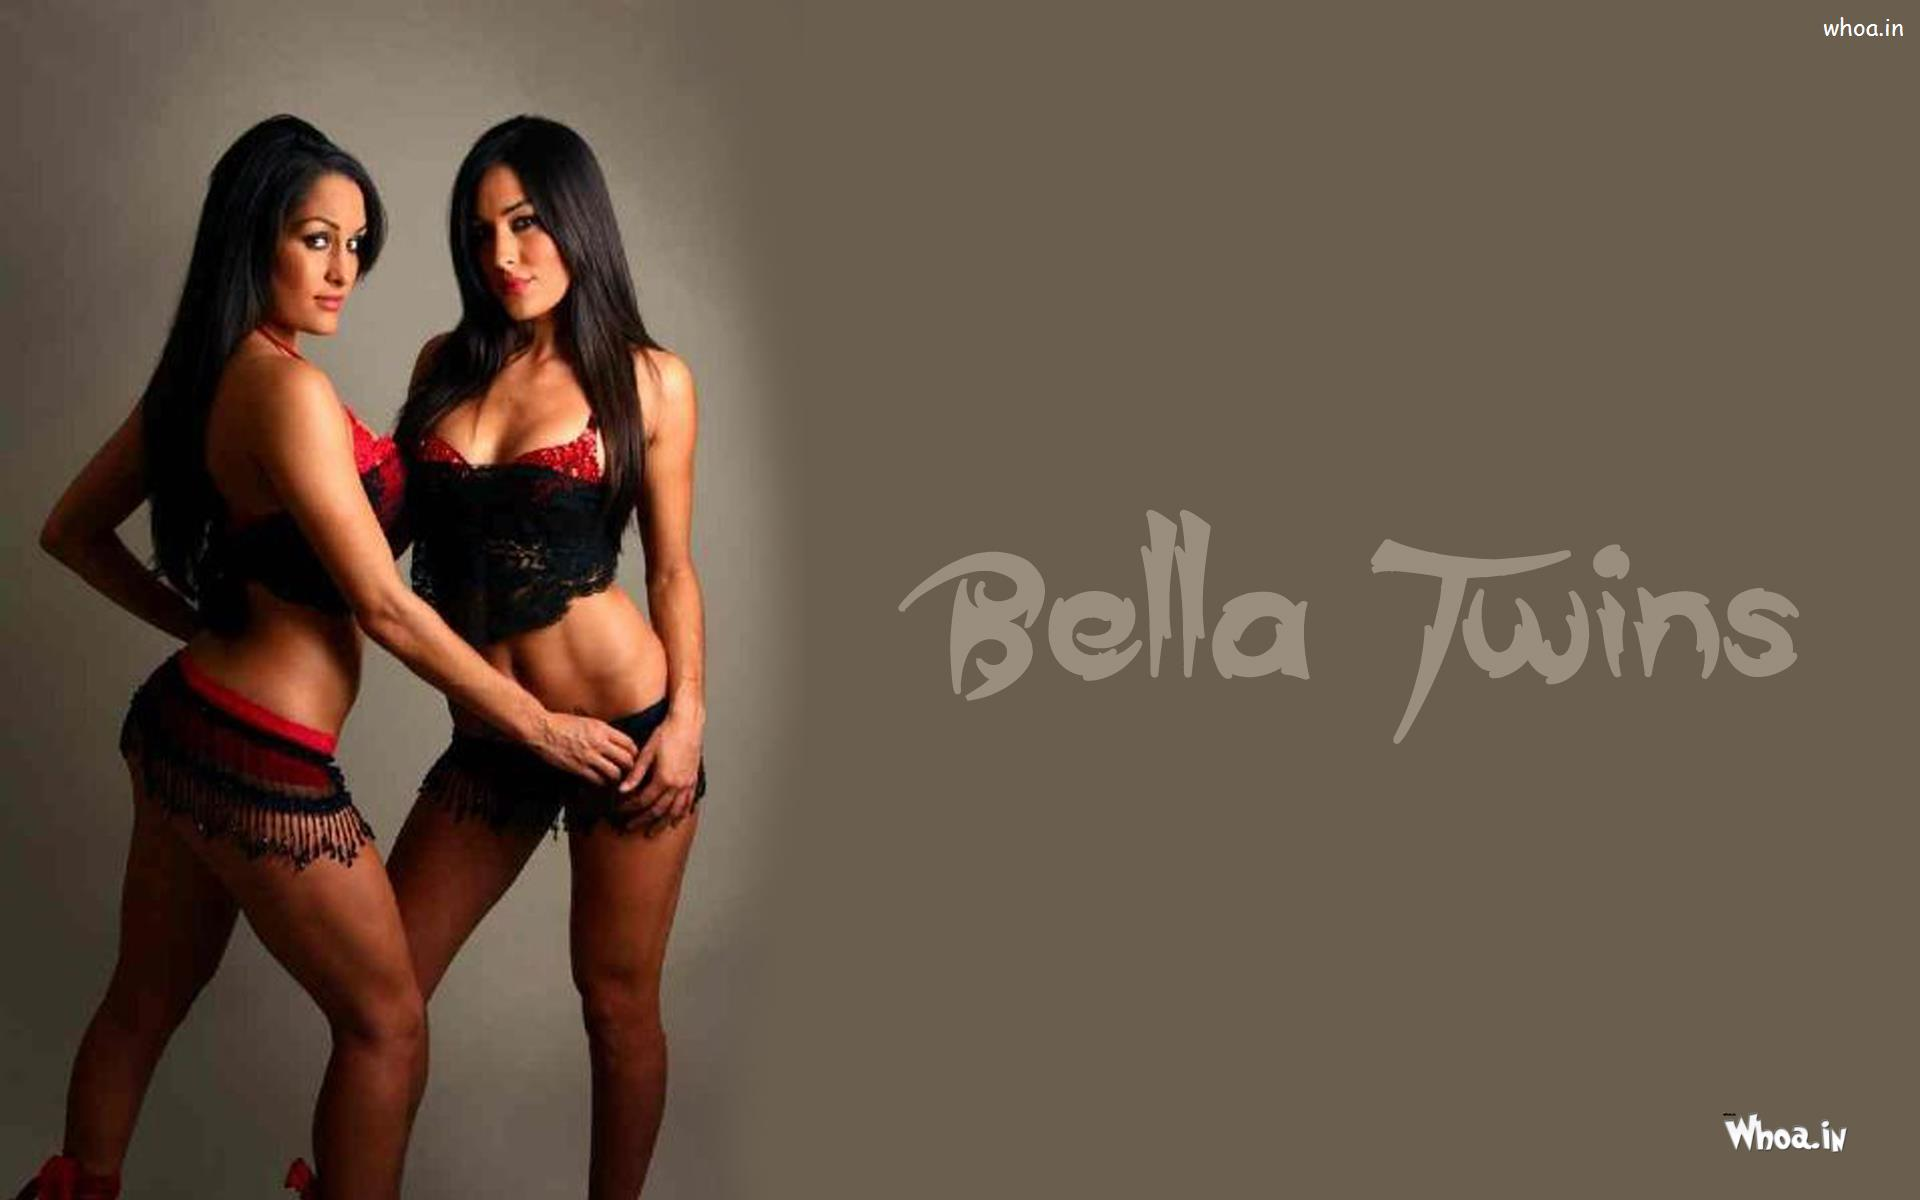 The Bella Twins Giving Sexy Pose In Hot Outfits